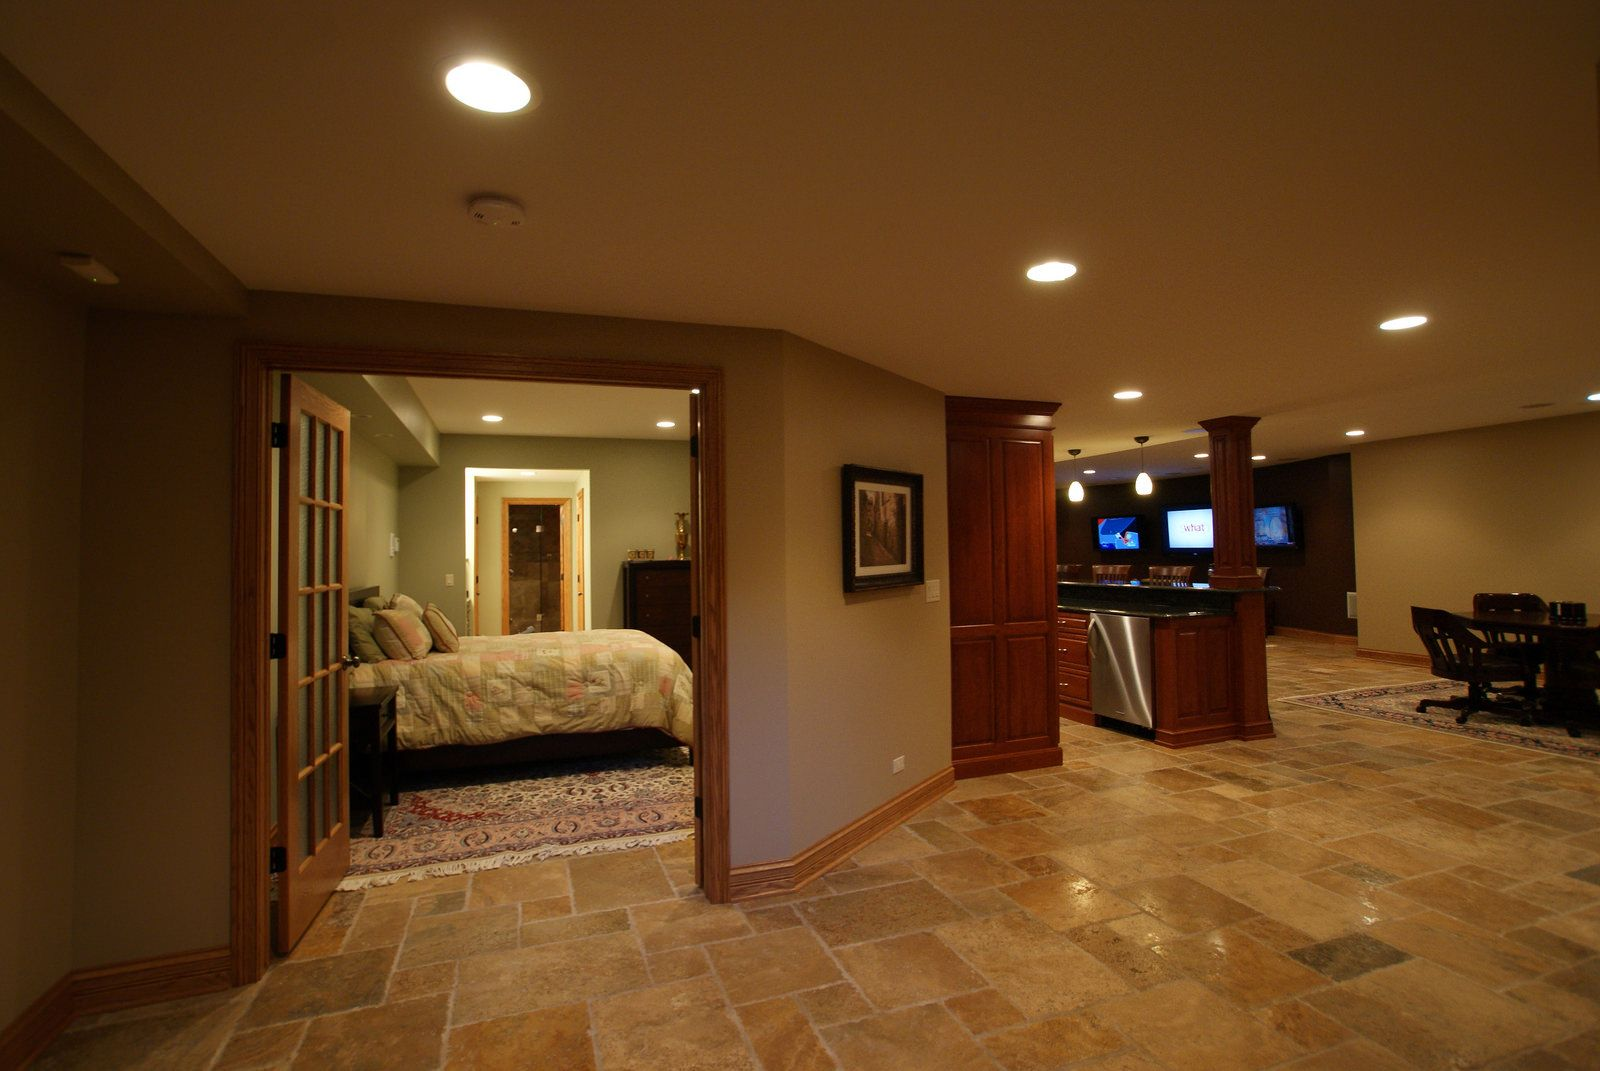 Remodeling Basement Ideas Amazing Marietta Basement Remodels Room Additions Georgia Also